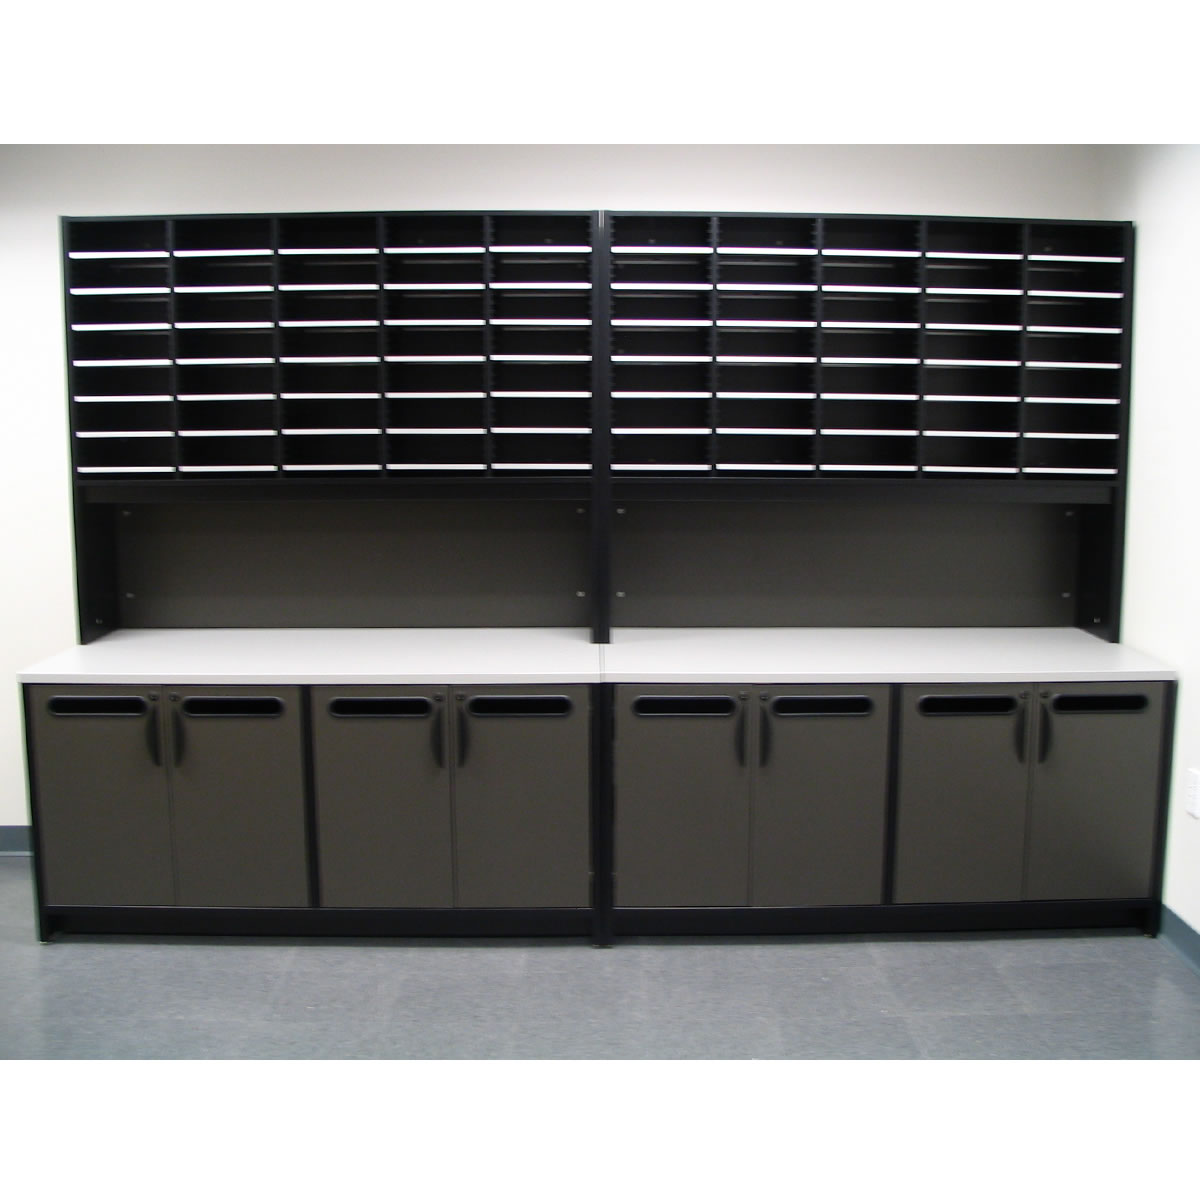 Mailroom Furniture Design Mail Room Furniture Design